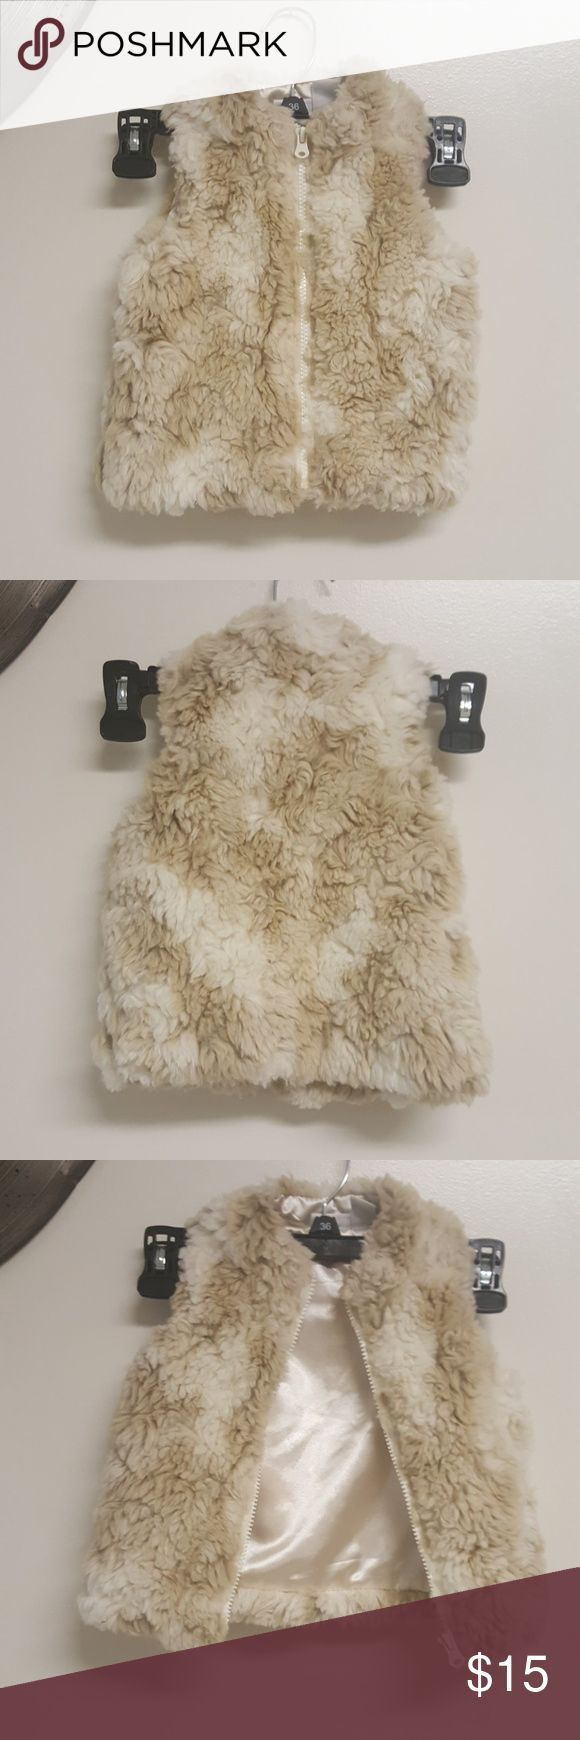 Kids R US coat vest Room for Bargaining  This very is super furry and soft on the outside and smooth and silky on the inside. This does keep you kid warm too. There are no stains on the inside or out  This could be worn on you little girl with a cute long sleeve some boots and cute winter leggings. kids r us Jackets & Coats Vests